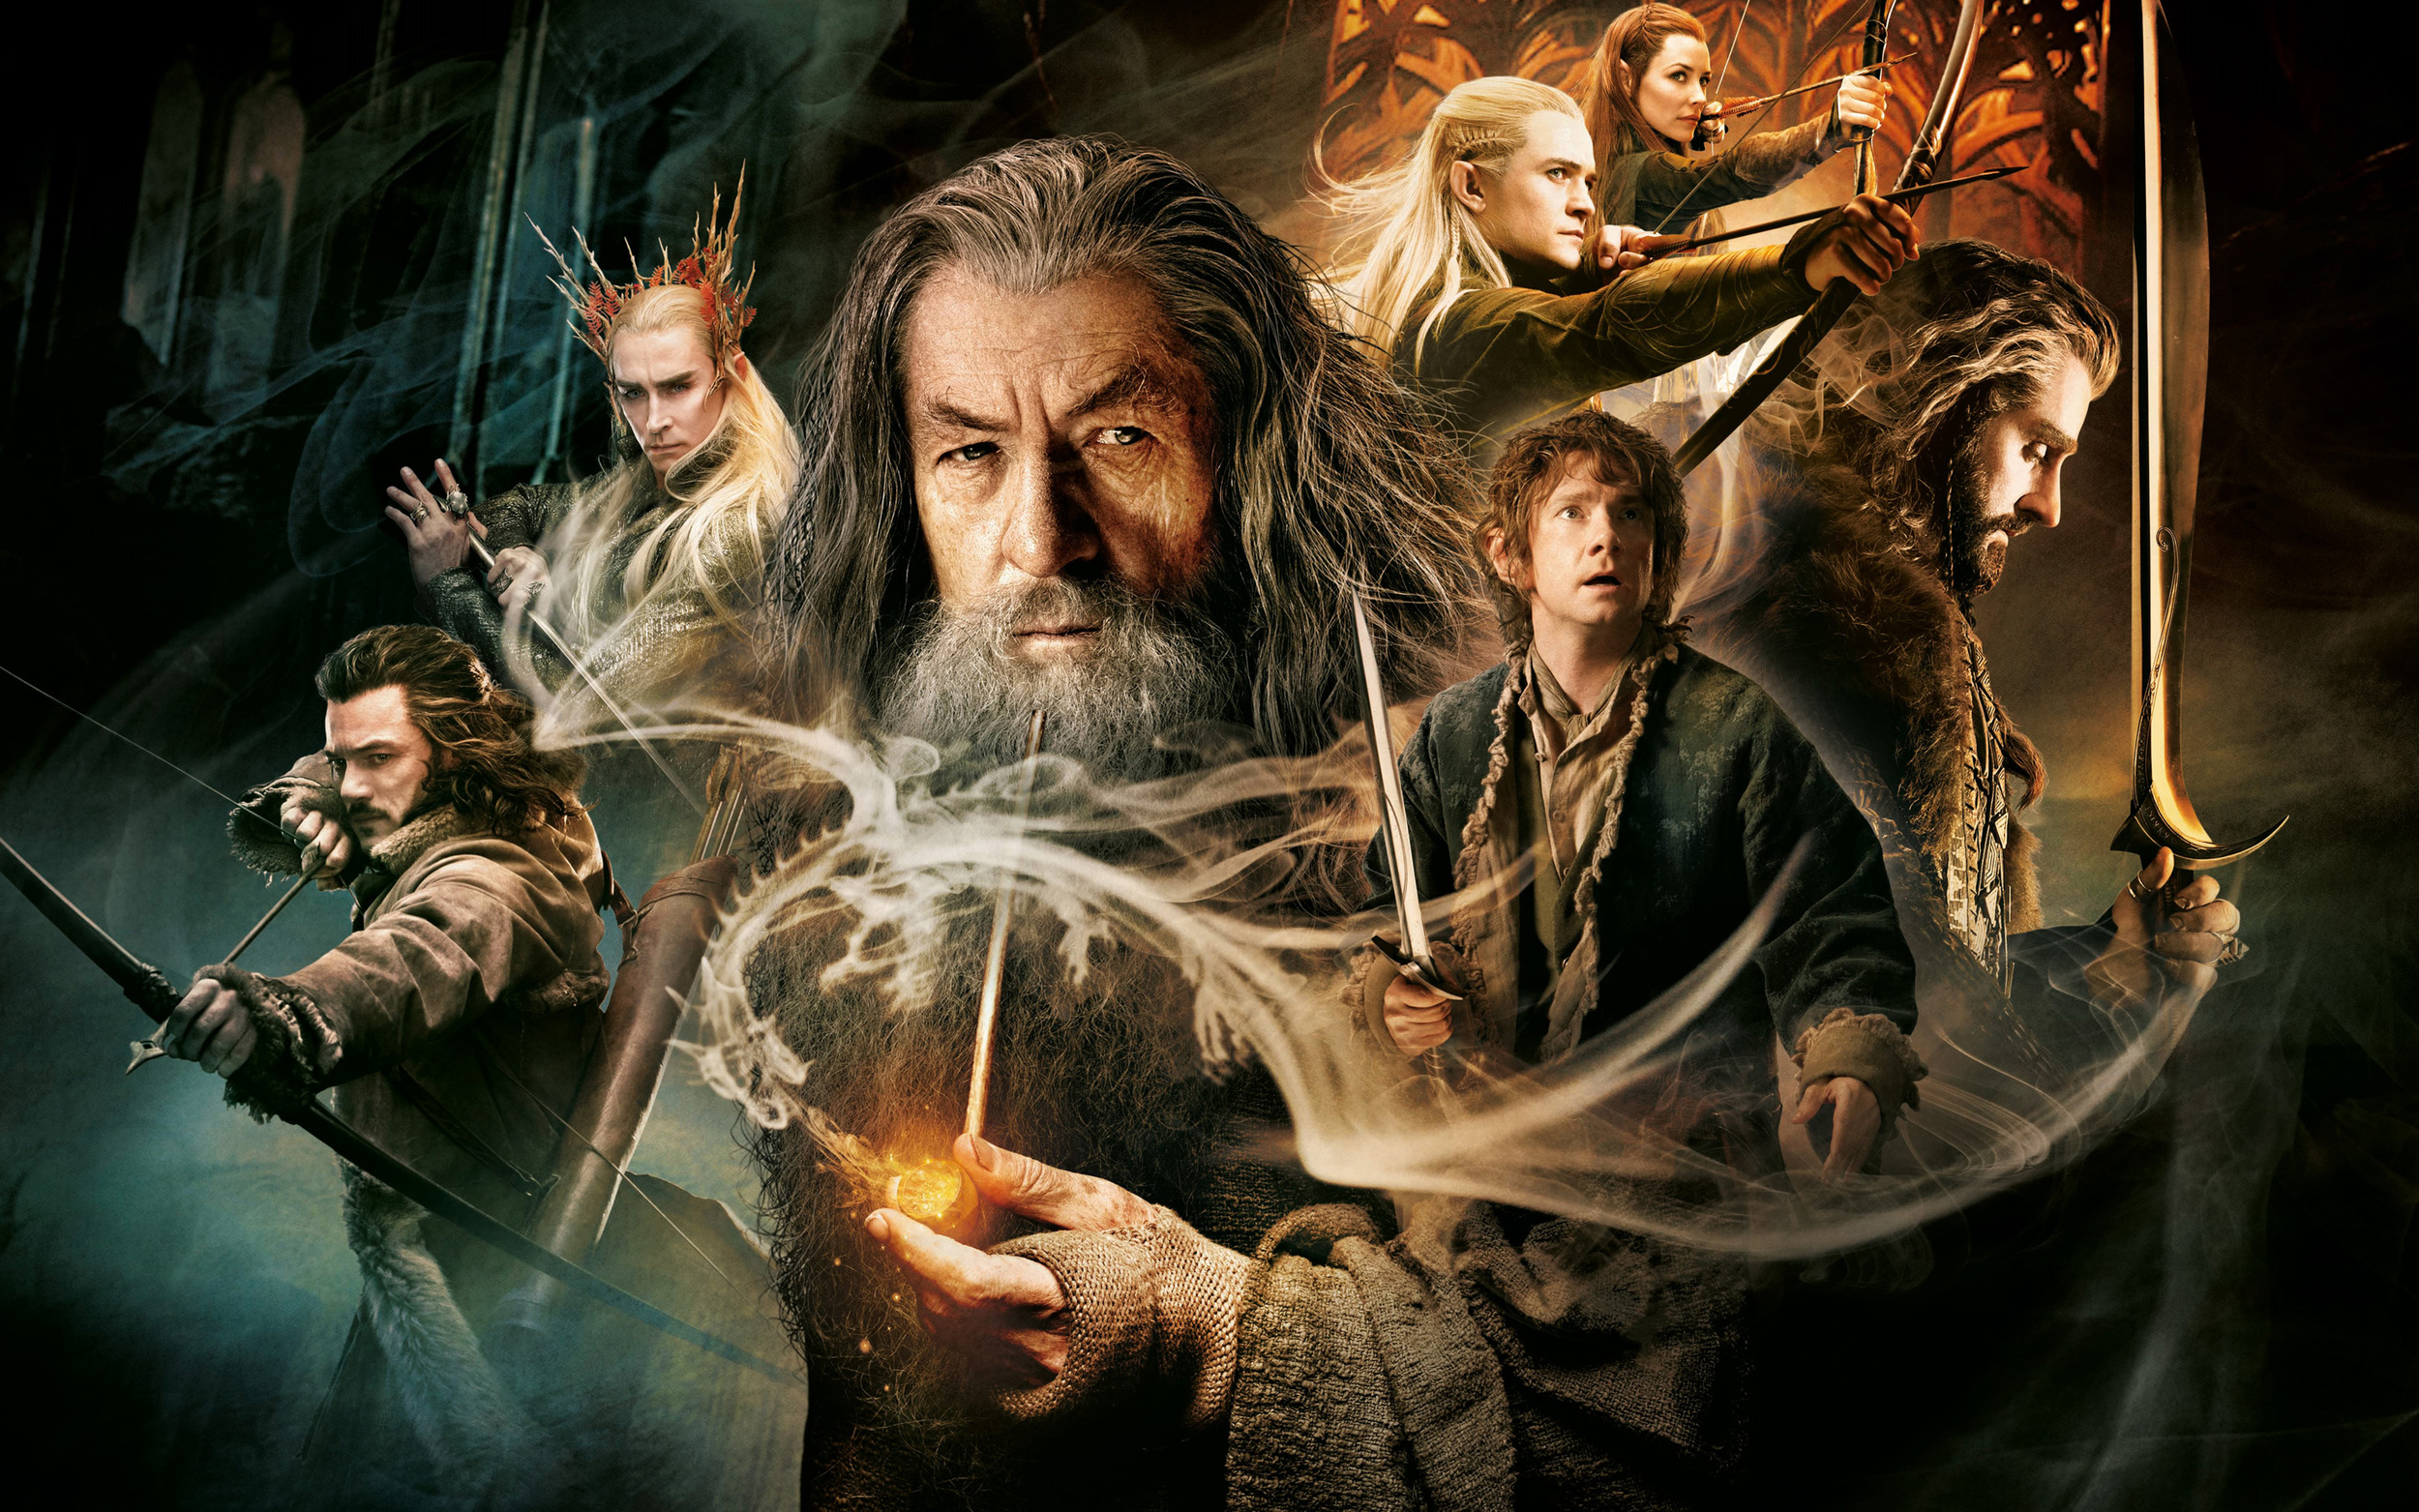 The Hobbit - The Desolation of Smaug  is a far superior movie to the first